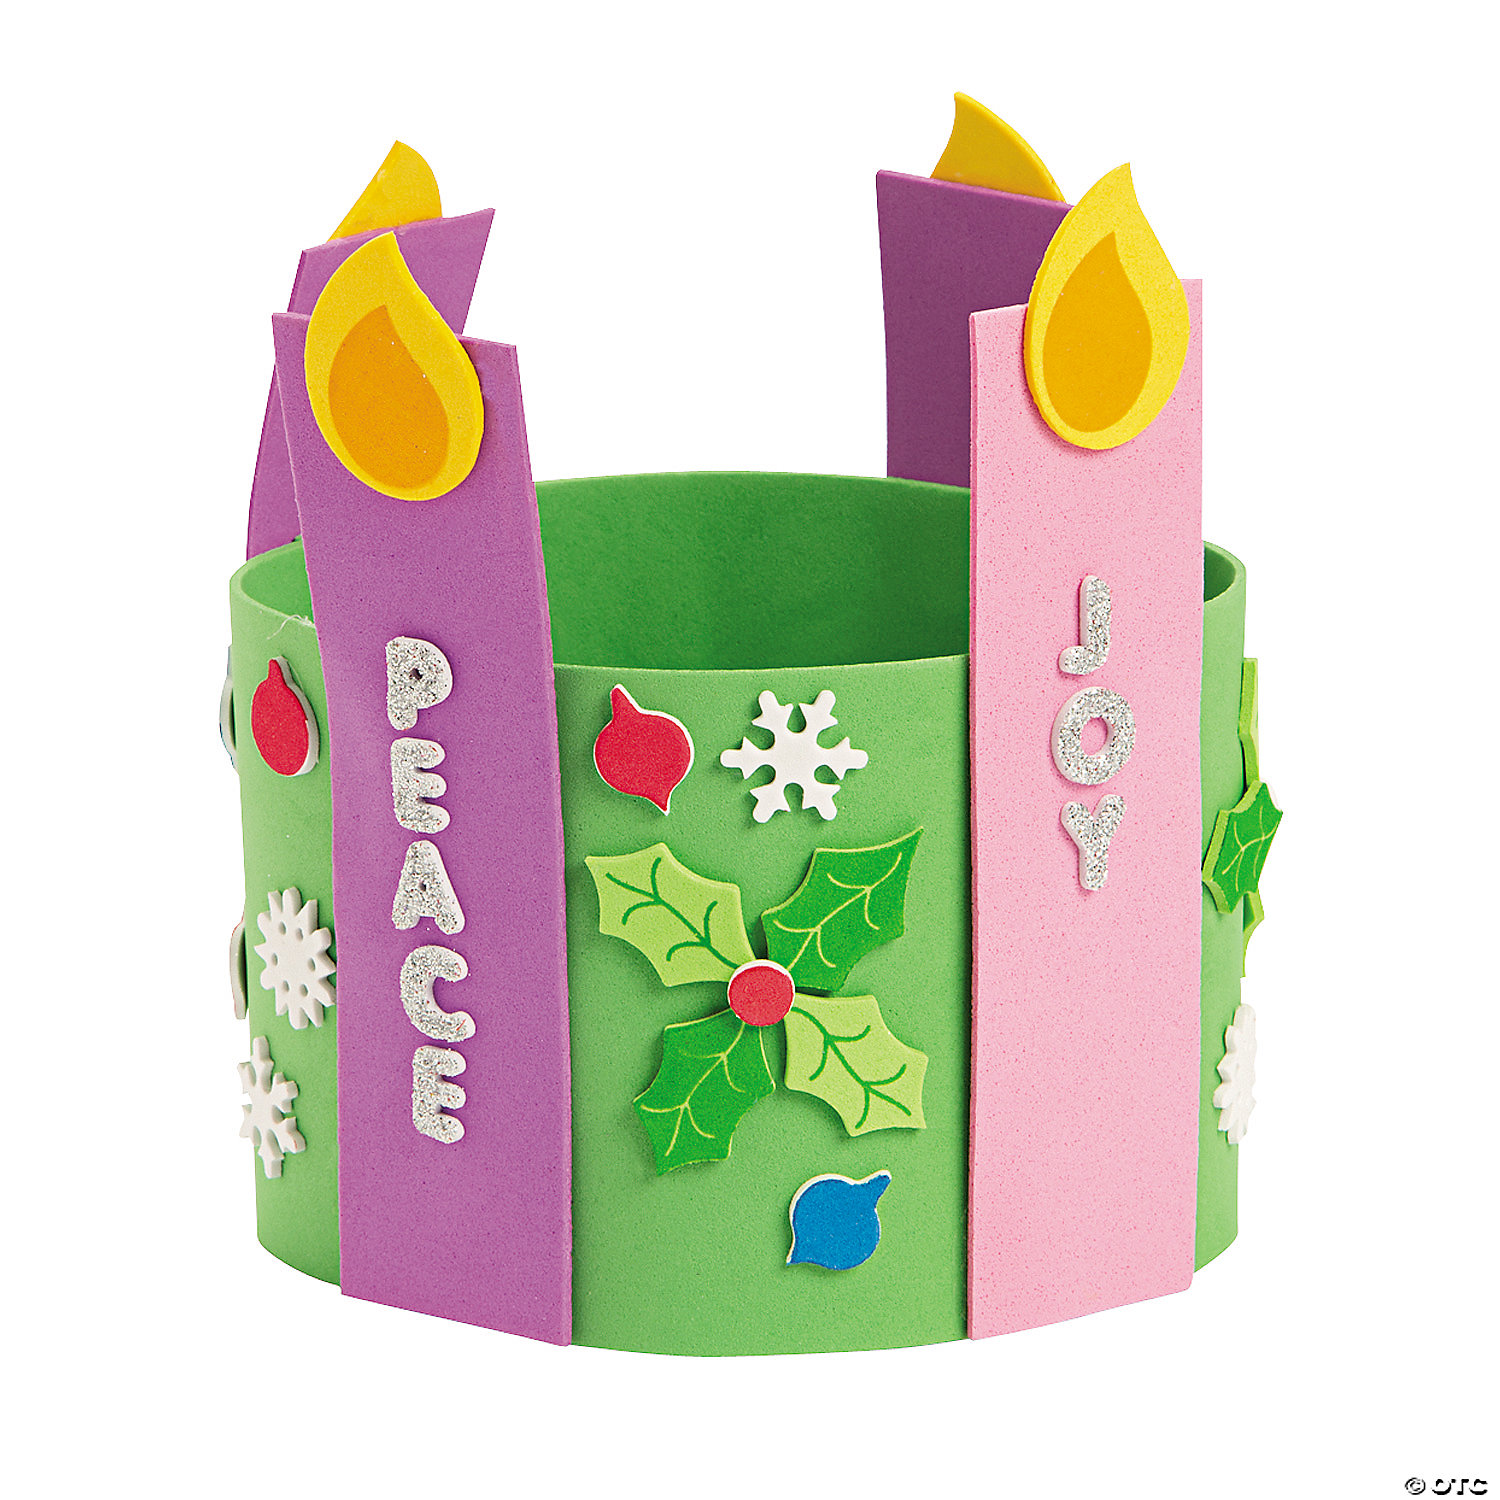 Advent Candle Stand Up Wreath Decoration Crafts Crafts for Kids WBTuUNpc